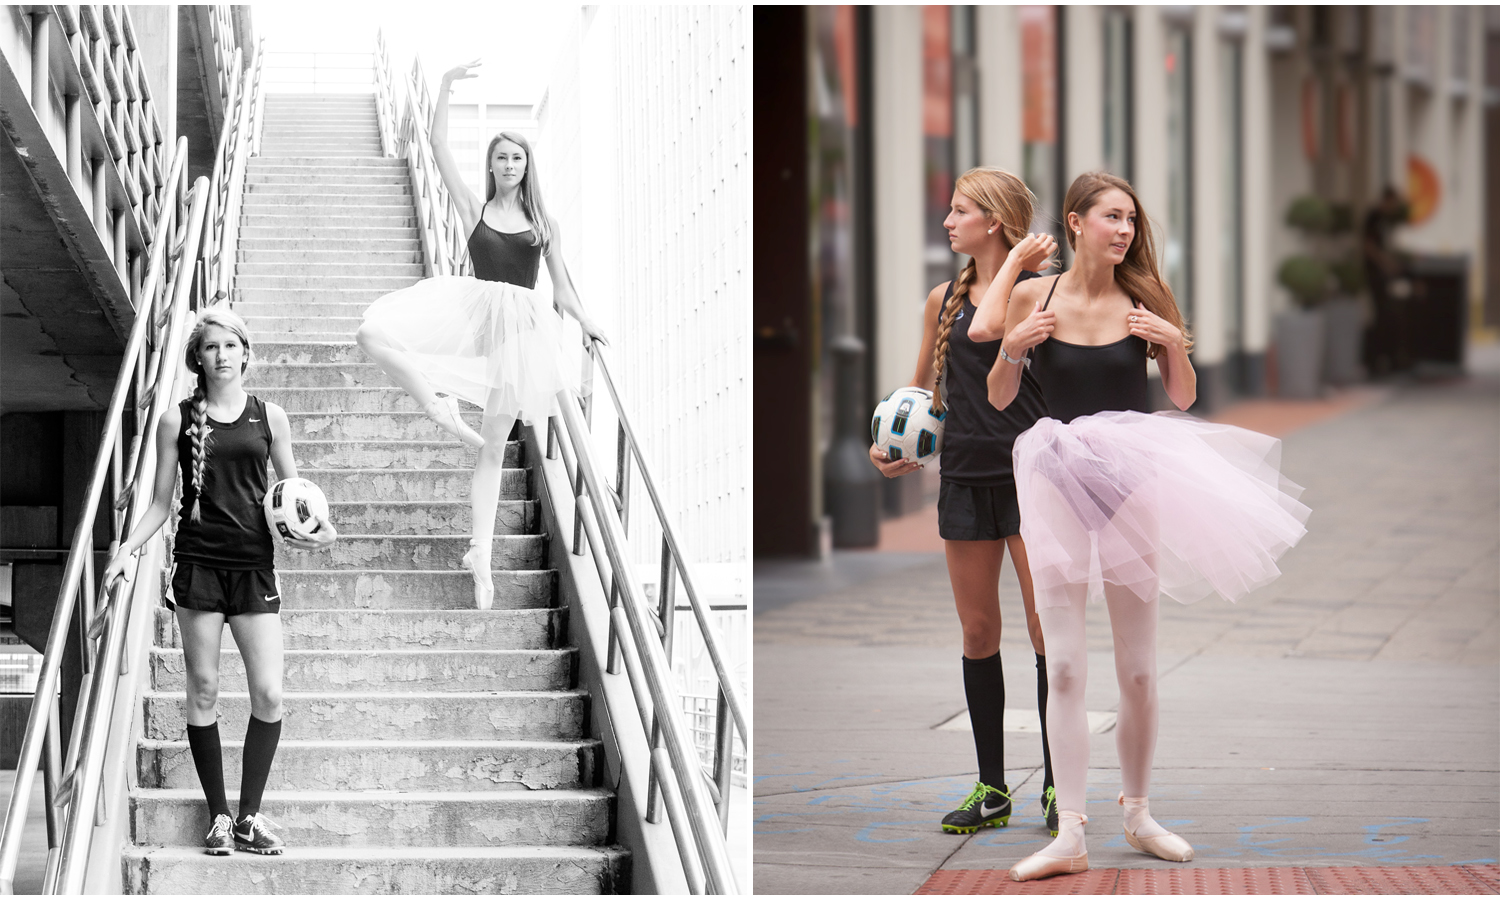 Downtown Denver best friends senior pictures session with a ballerina and soccer player with photographer Jennifer Koskinen, Merritt Portrait Studio.